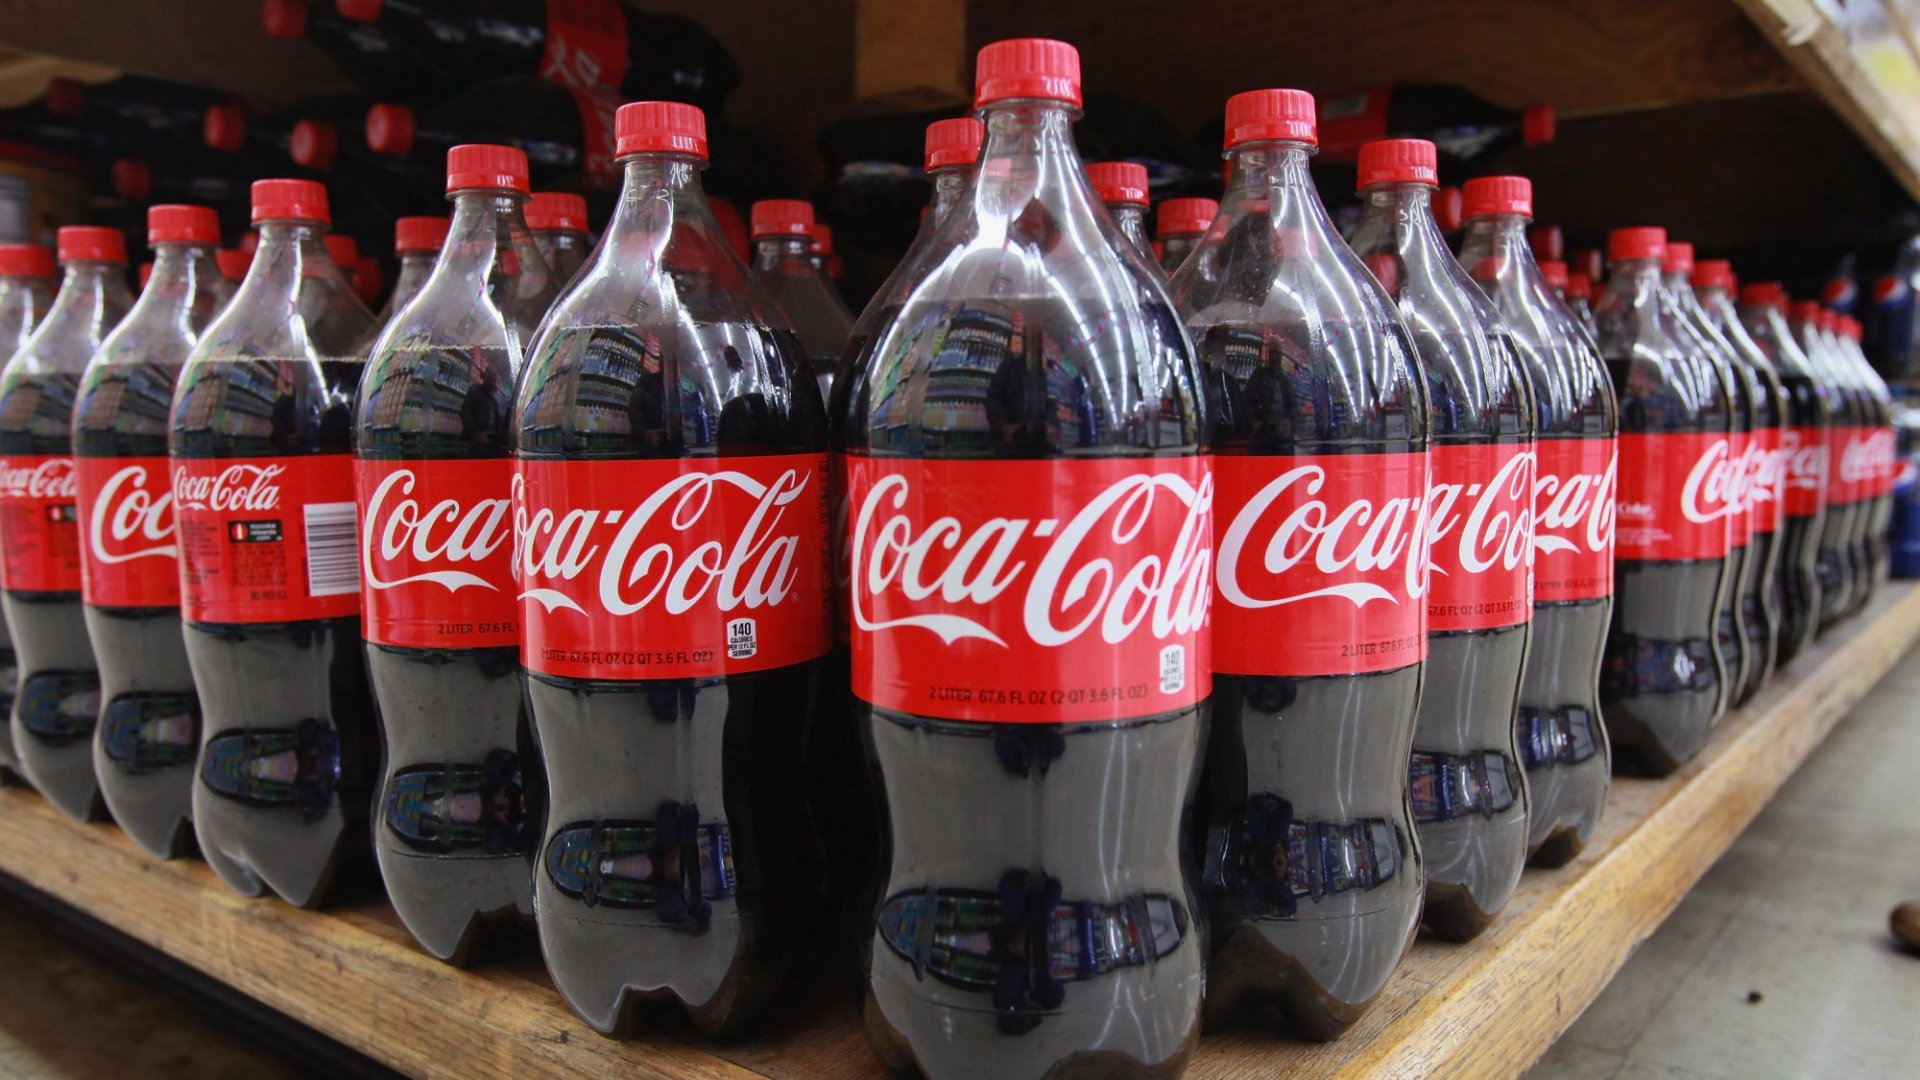 Does Coke want unity? Or does it want everyone just to be the same?